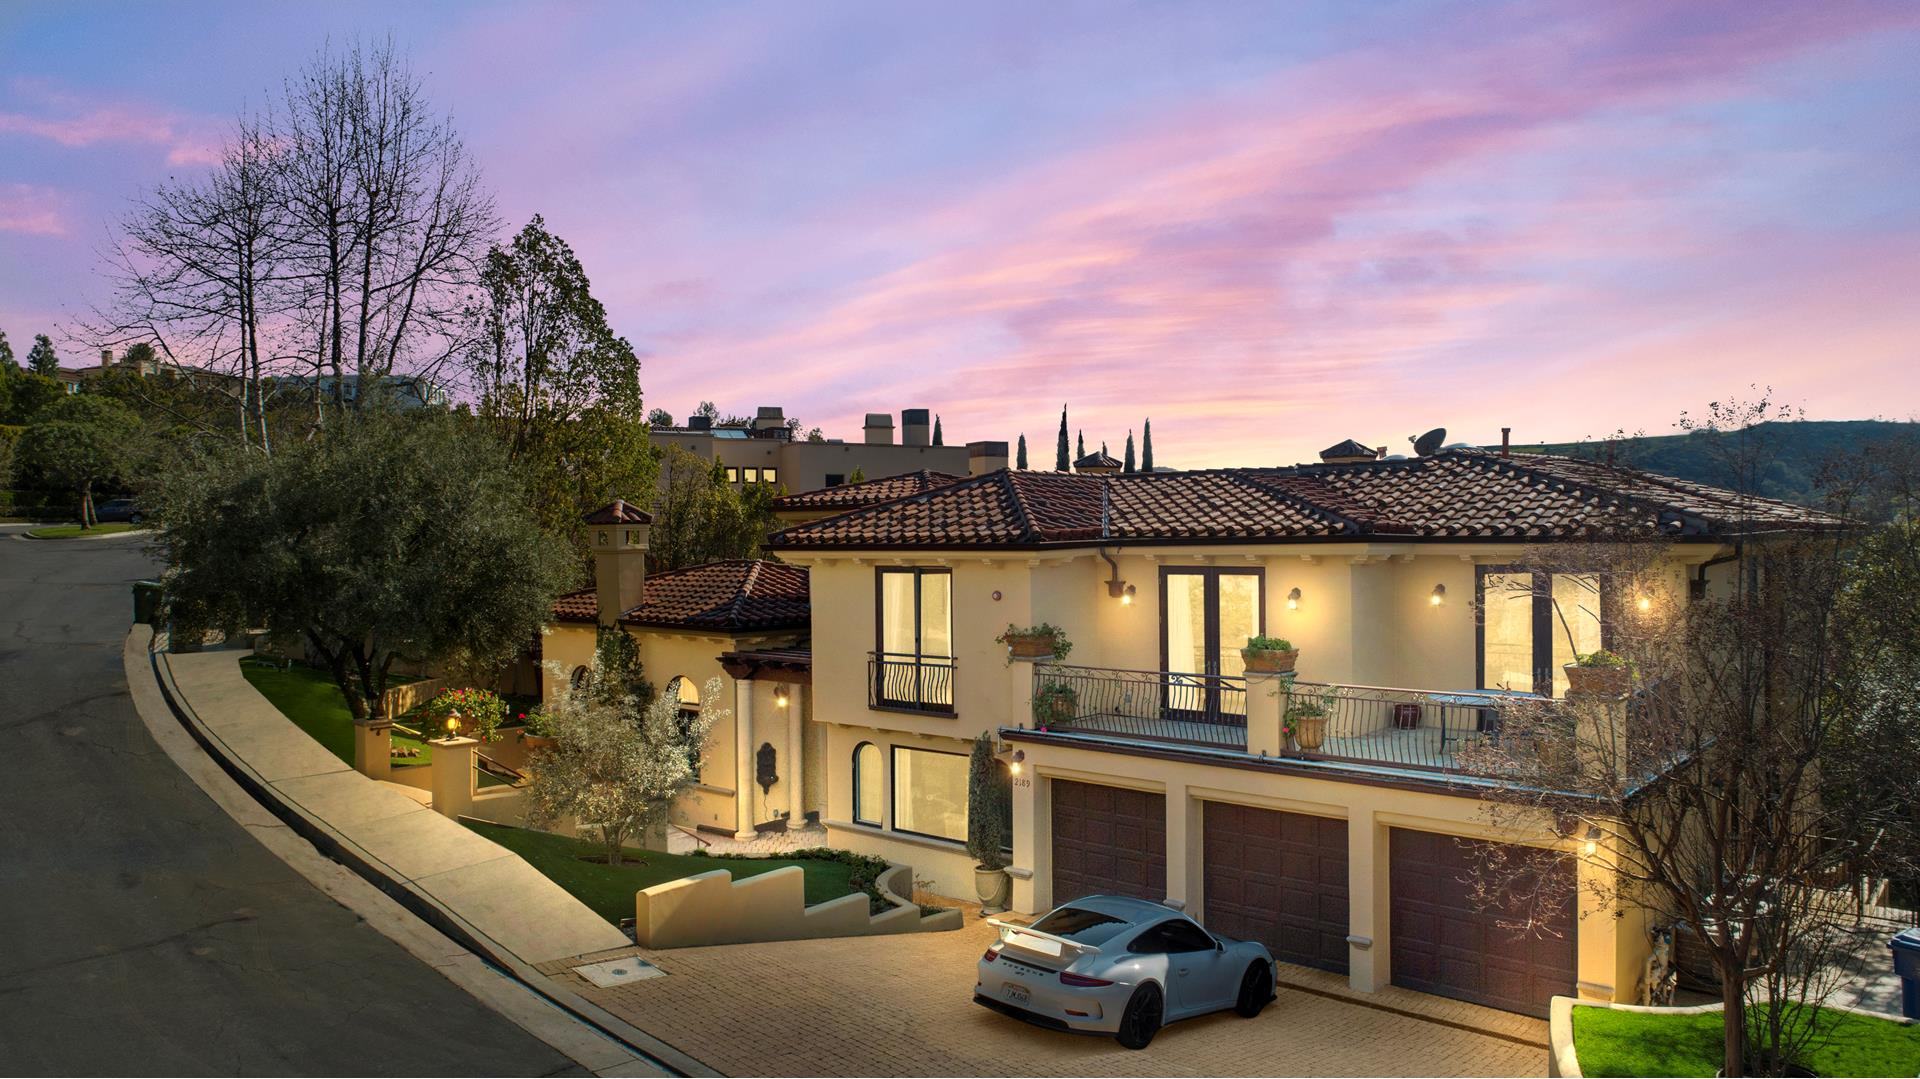 2189 SHERINGHAM Lane - Bel-Air / Holmby Hills, California